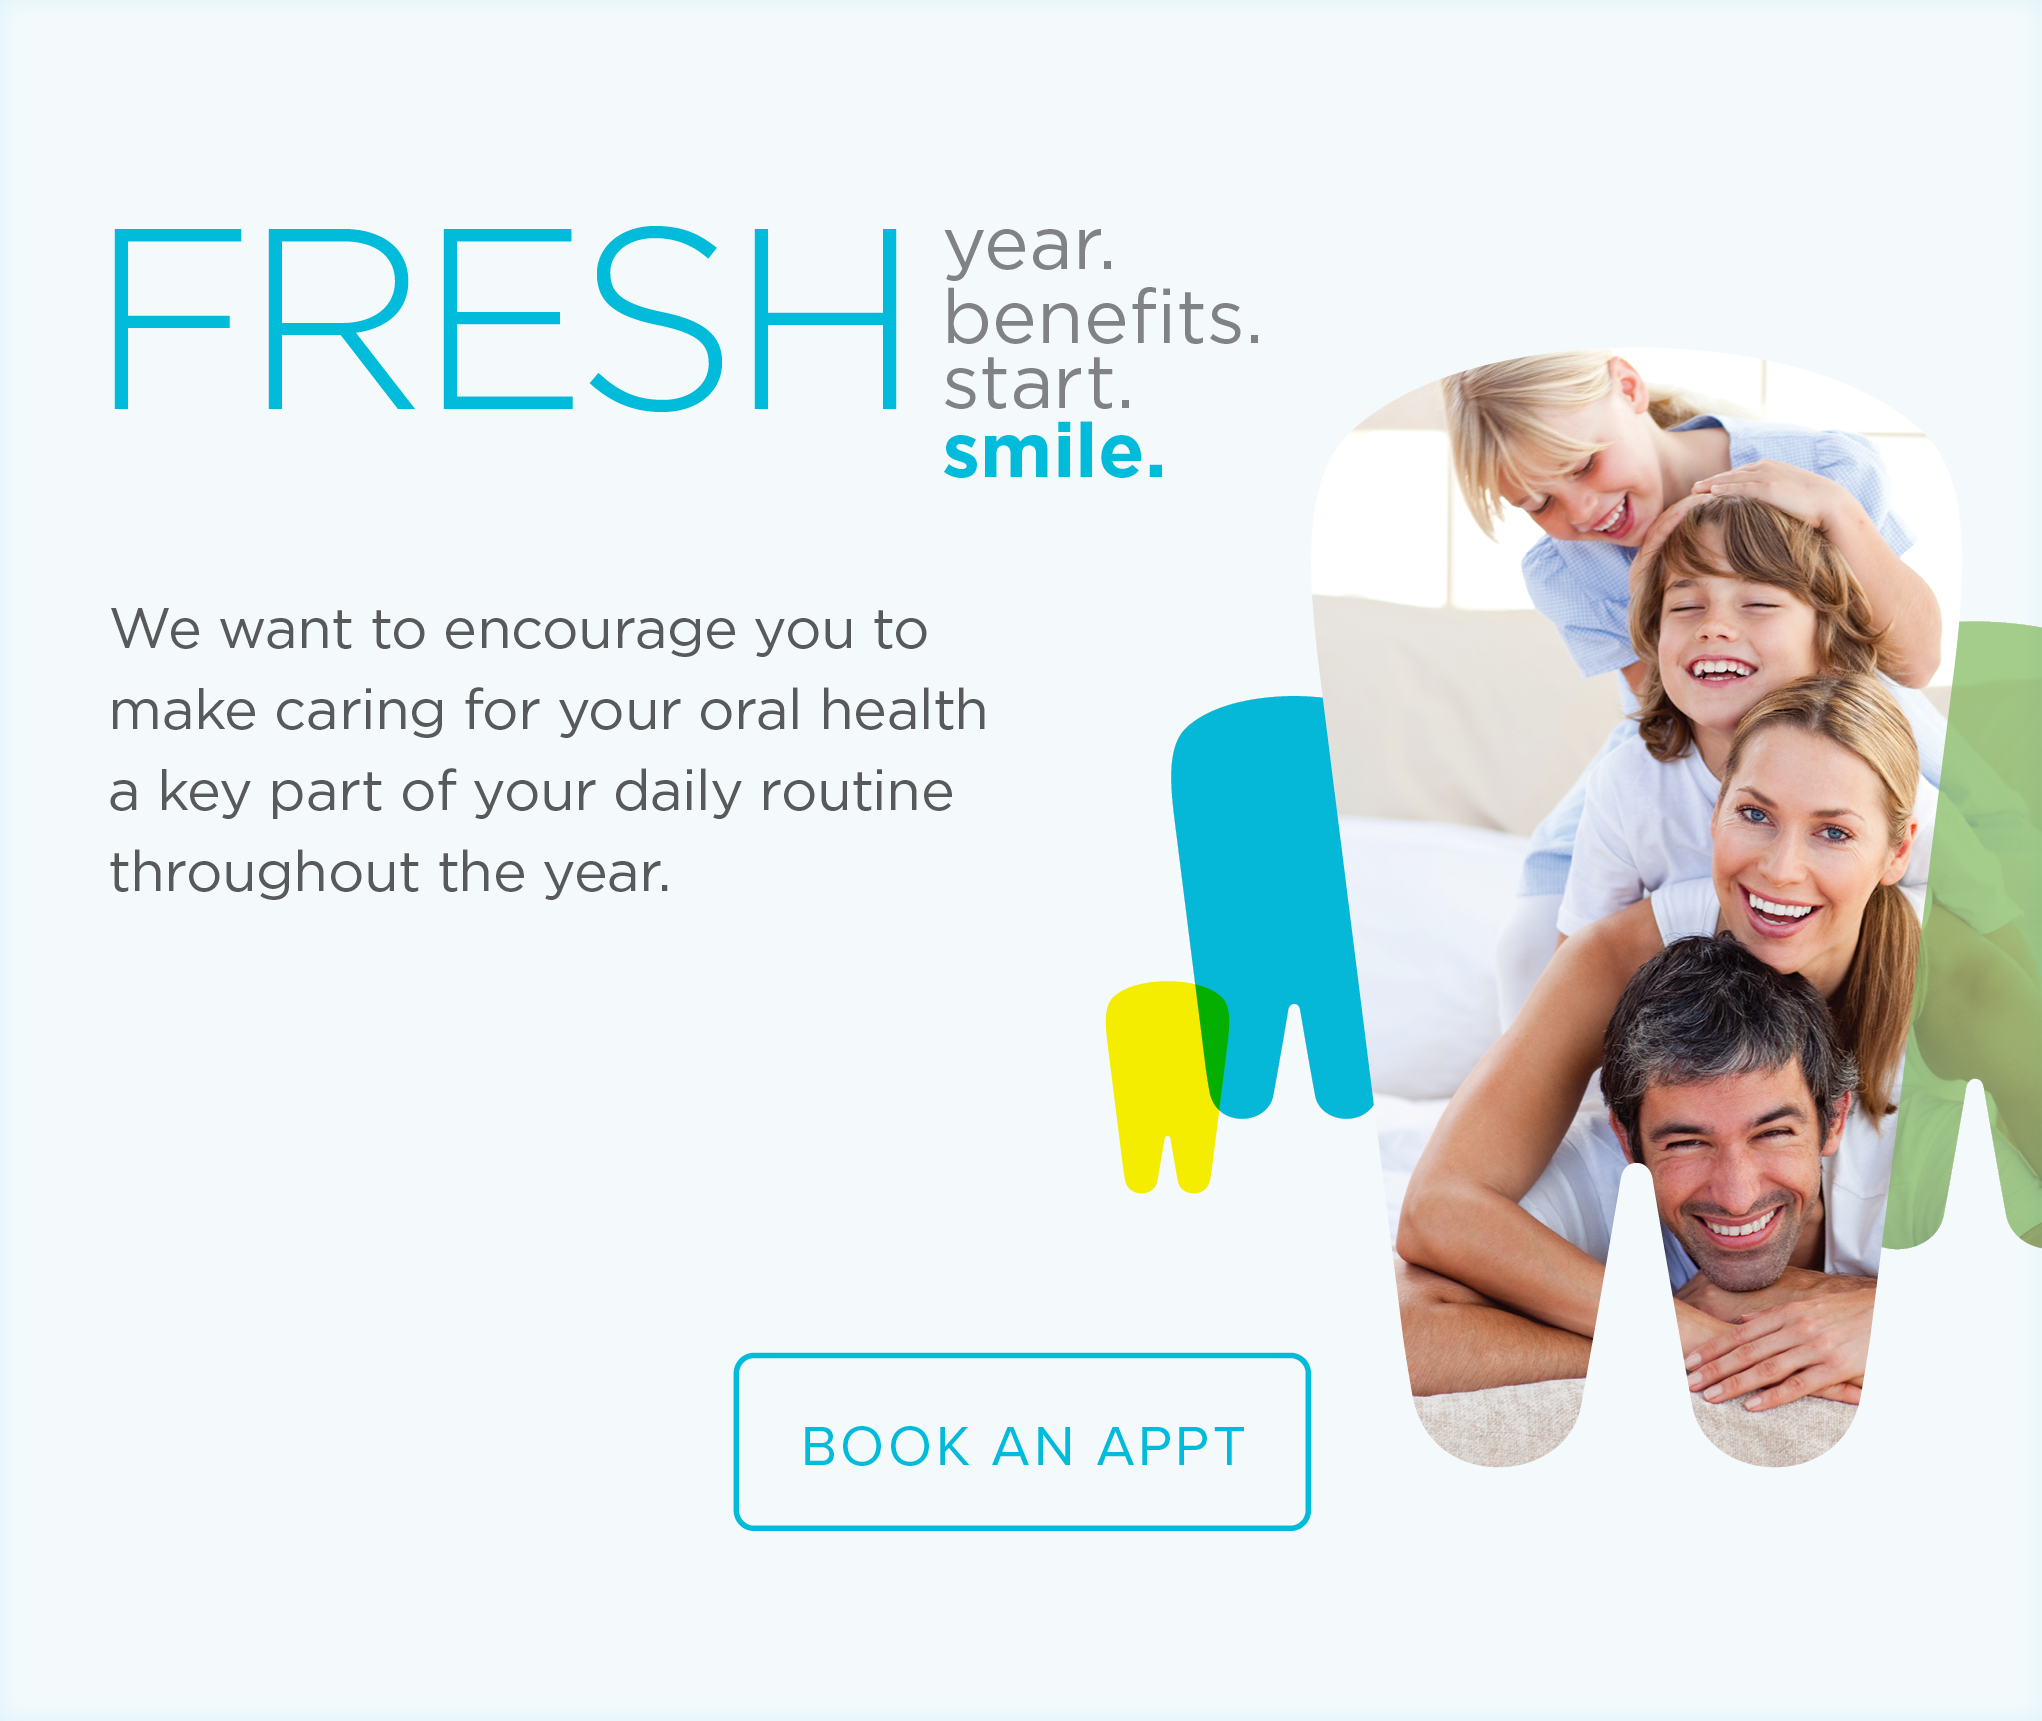 Modesto Modern Dentistry and Orthodontics - Make the Most of Your Benefits